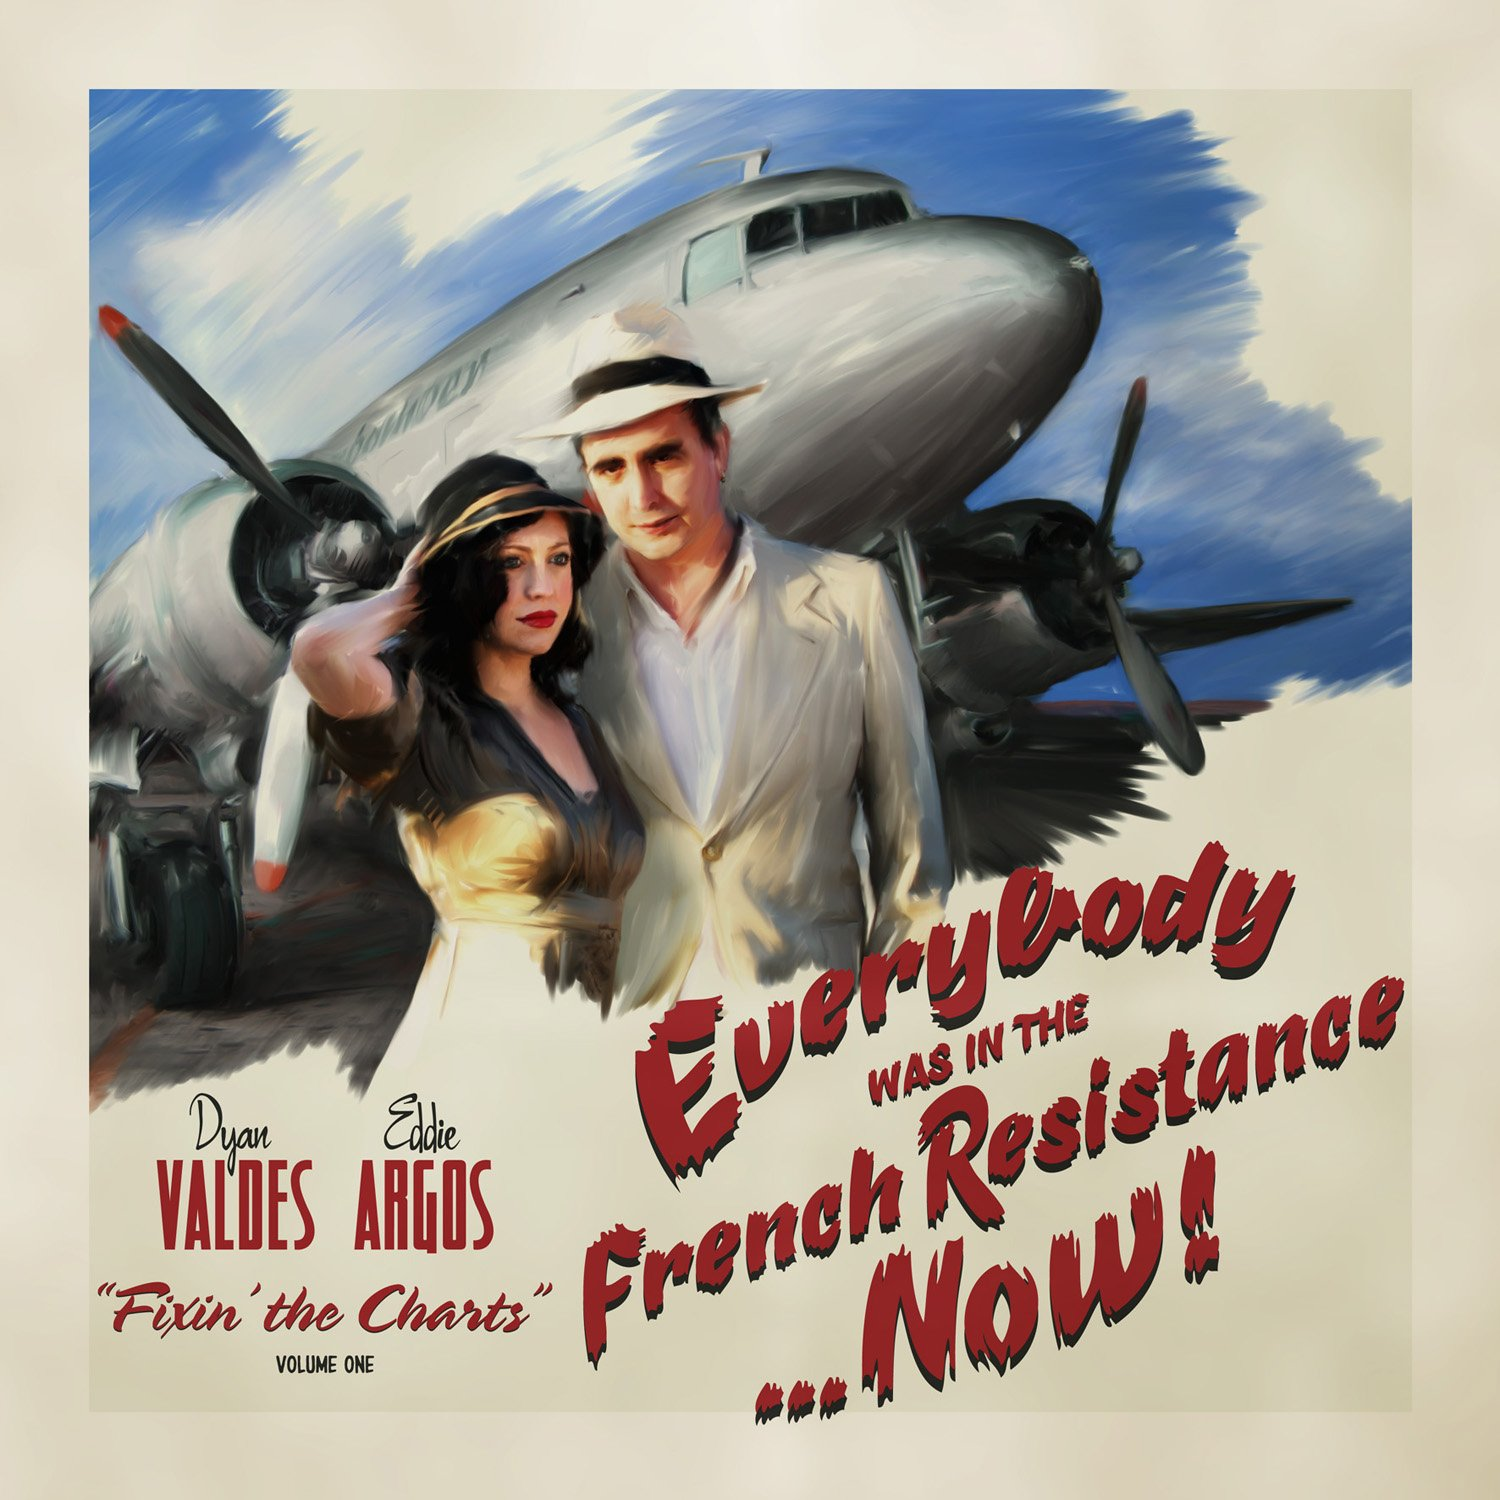 Everybody Was in the French Resistance…Now!, Fixin' the Charts Volume One